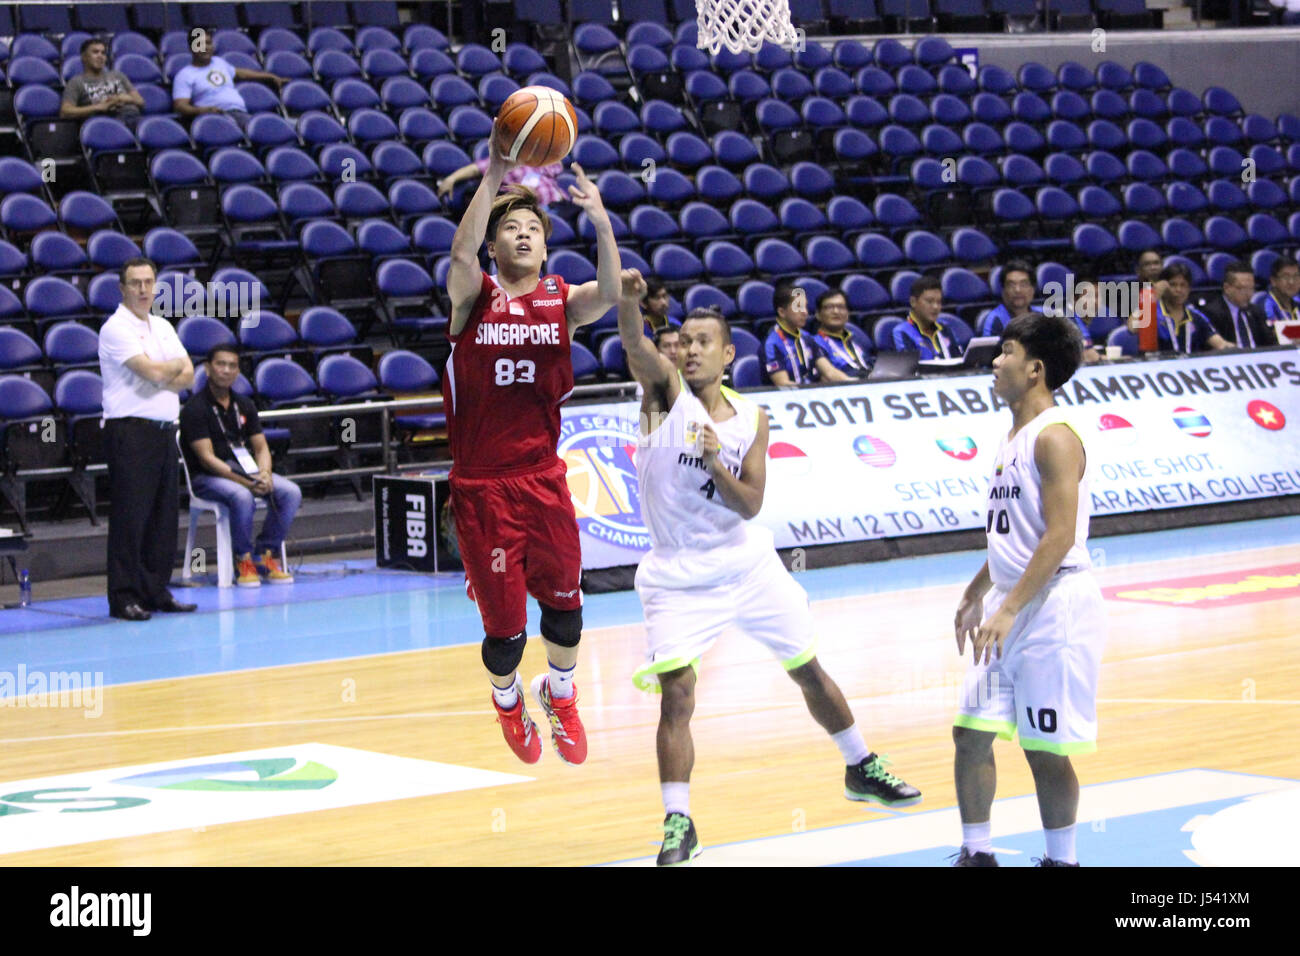 Tan Chin Hong (83) of Singapore takes a jumpshot over guard Myat Aung (4) of myanmar during their basketball game. - Stock Image